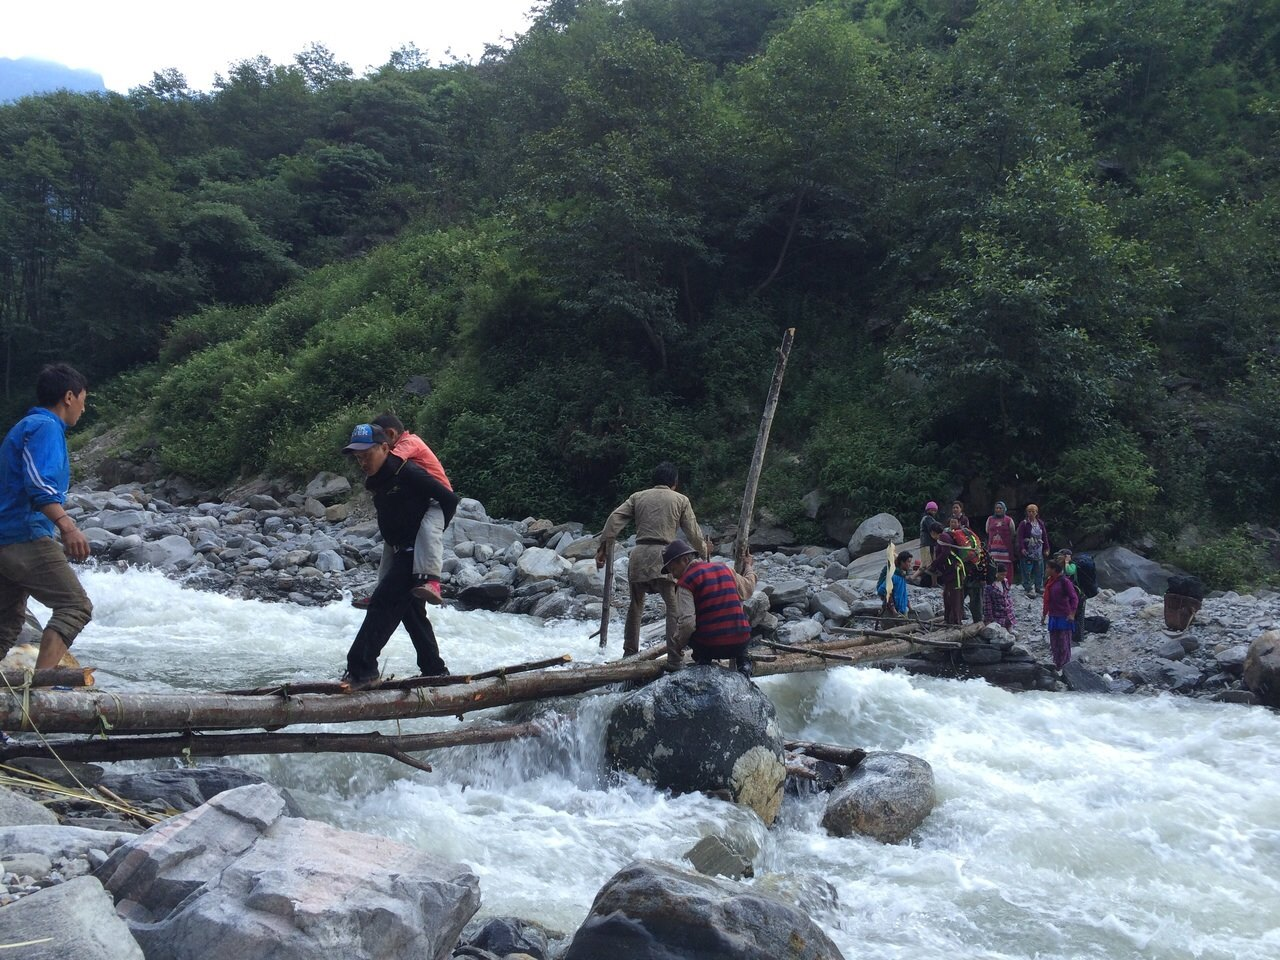 Villagers often made long difficult journeys to receive the aid they need.